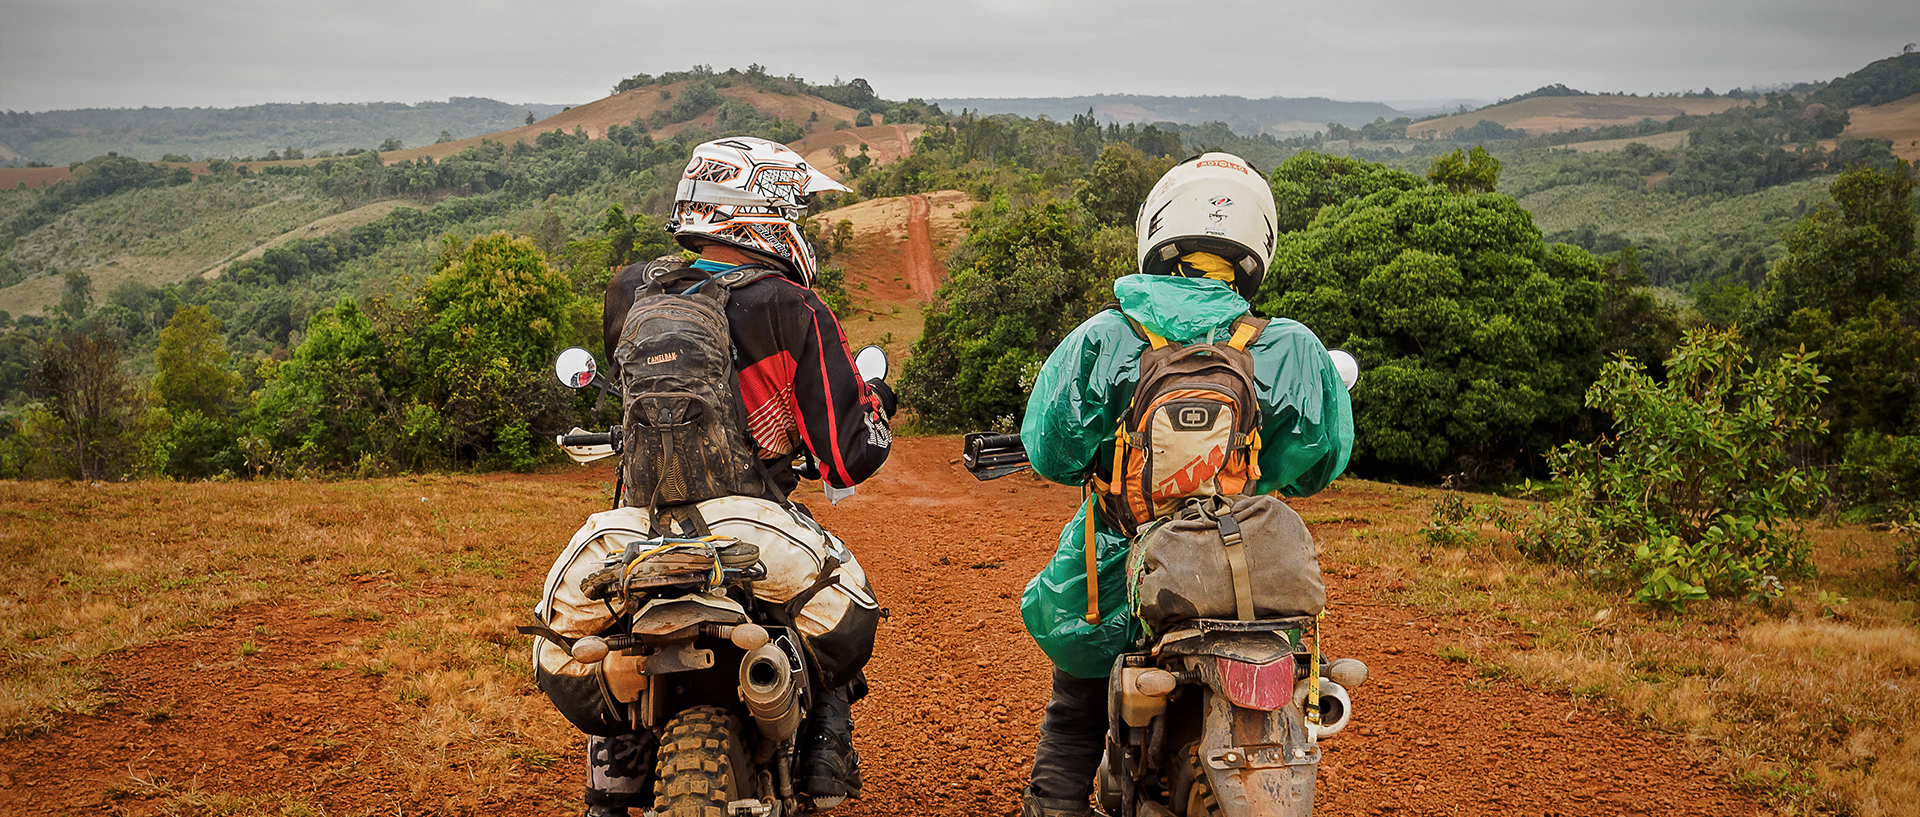 laos-off-road-motorbike-tour-luang-prabang-lao-motorcycle-riding-landscape-best-motolao-tiger-trail-travel